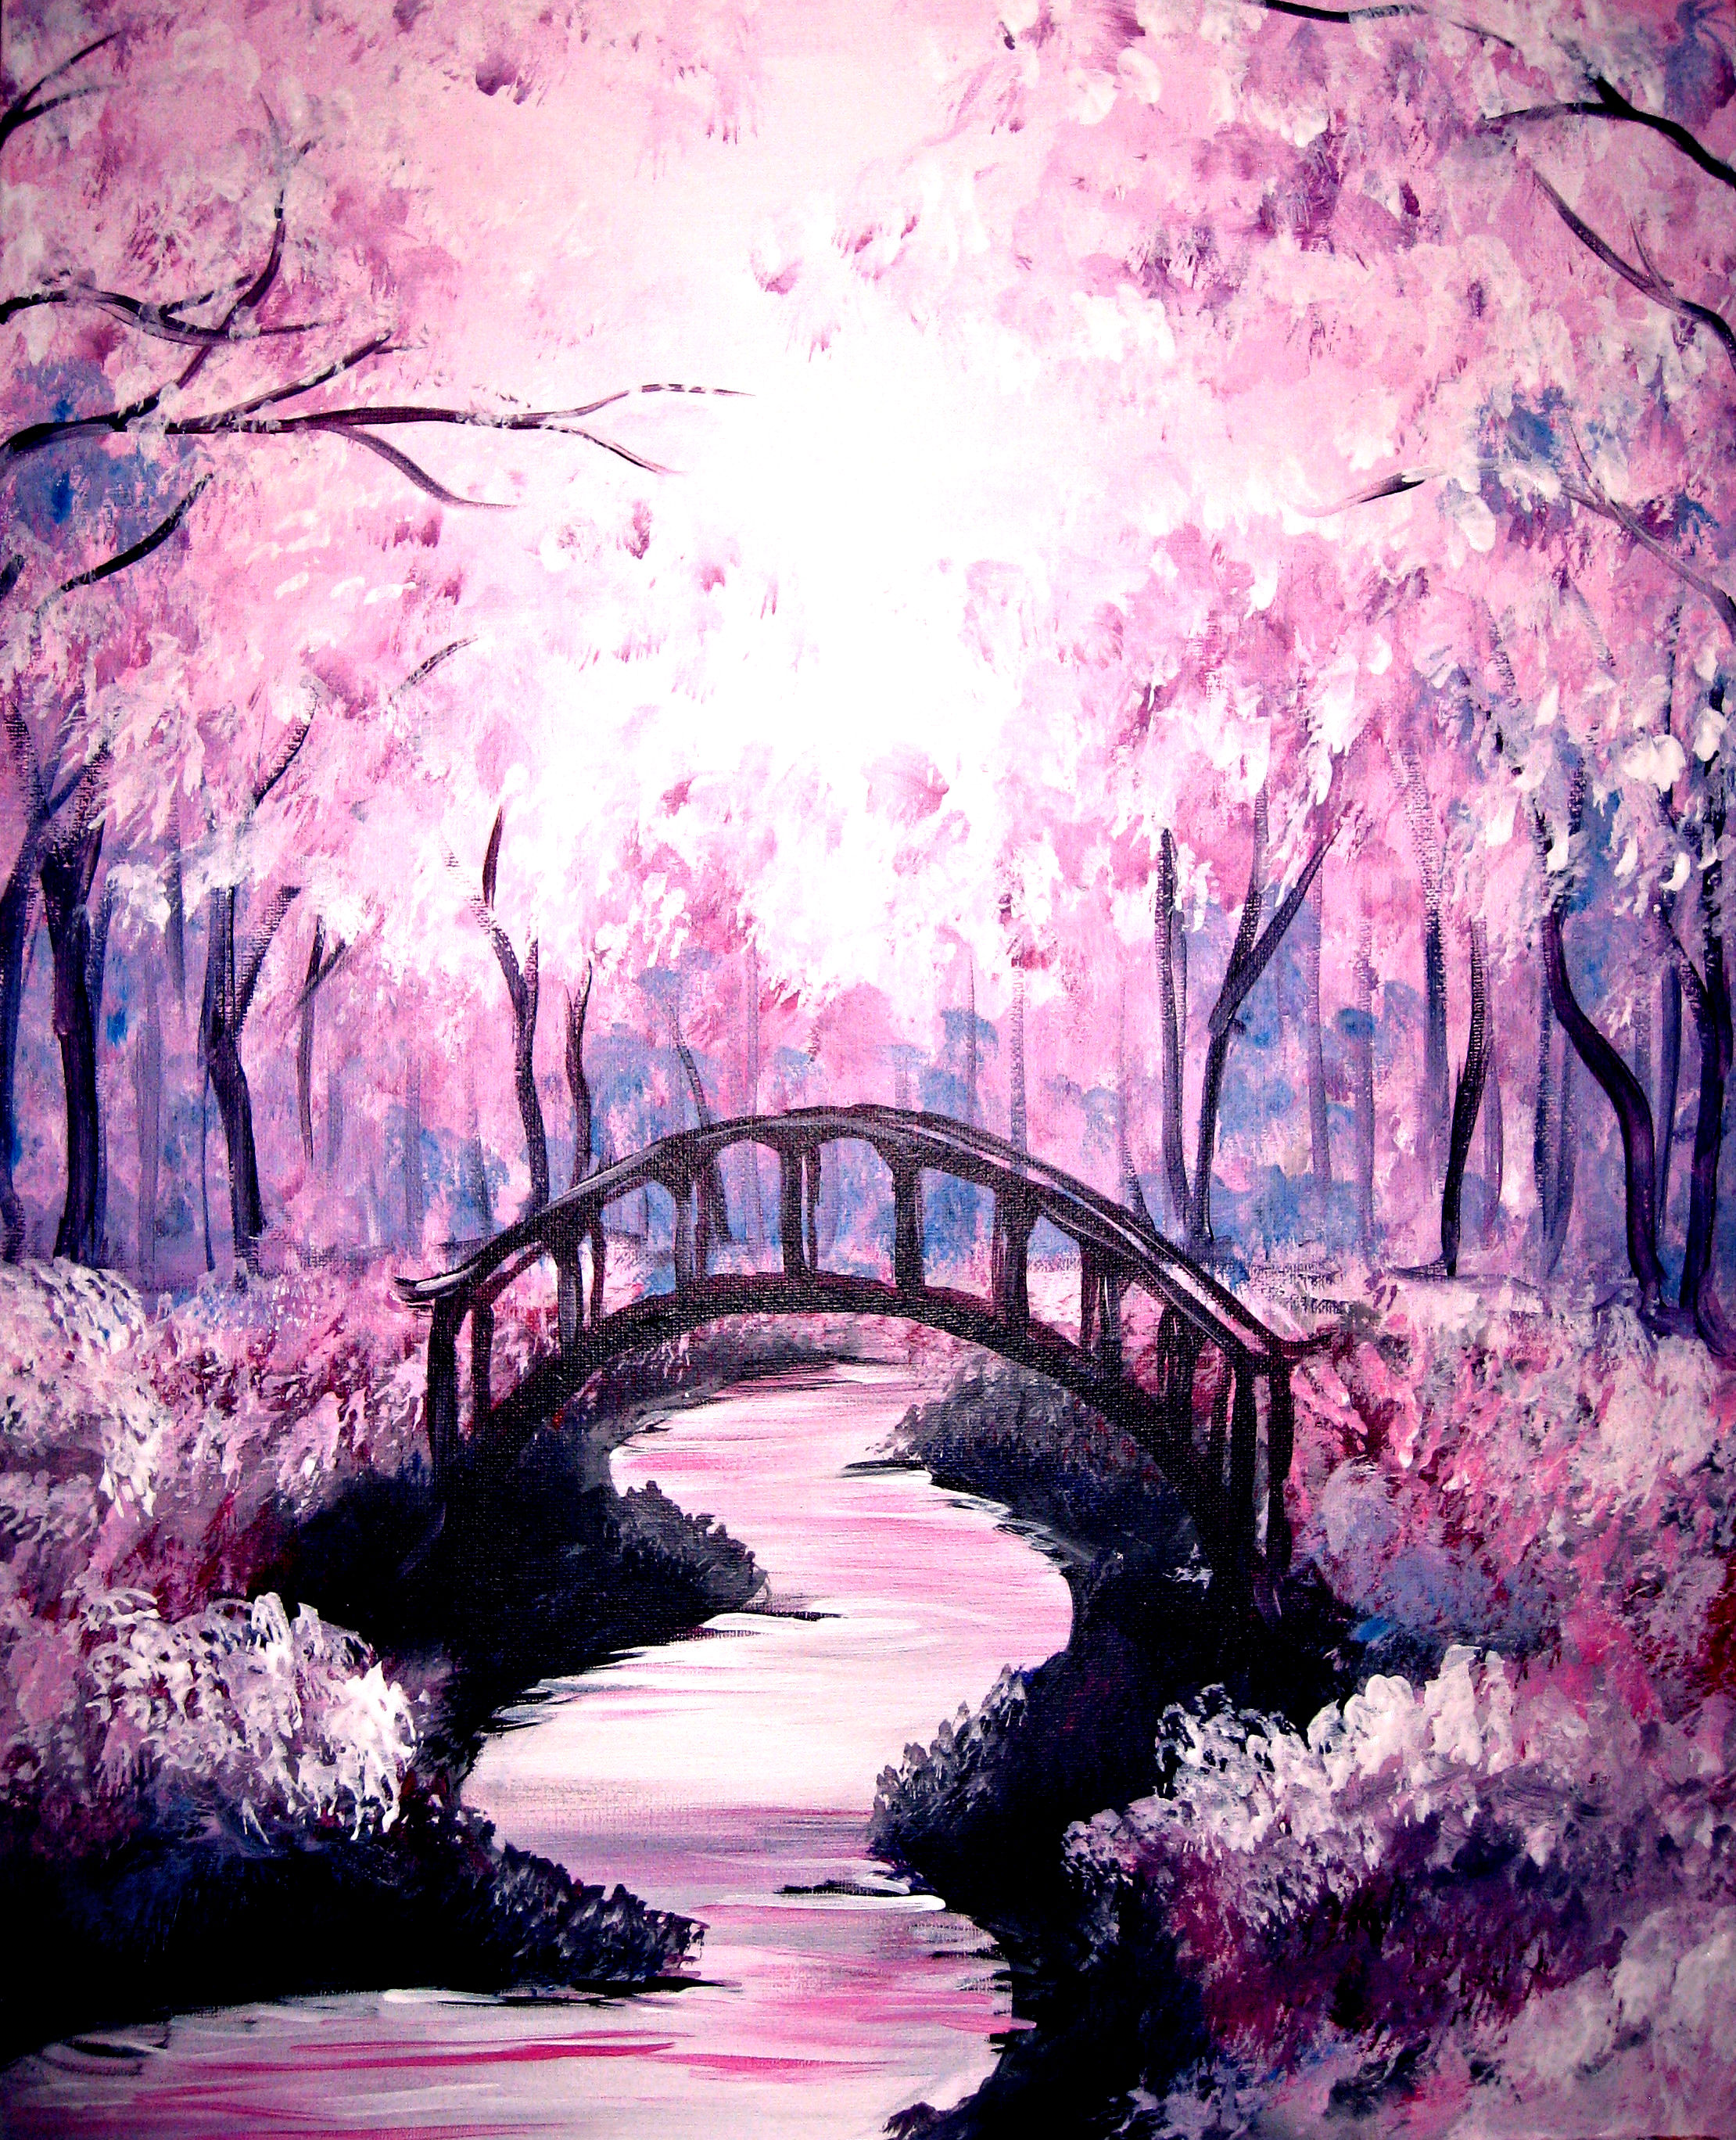 Learn To Paint Bridge Under The Cherry Blossoms